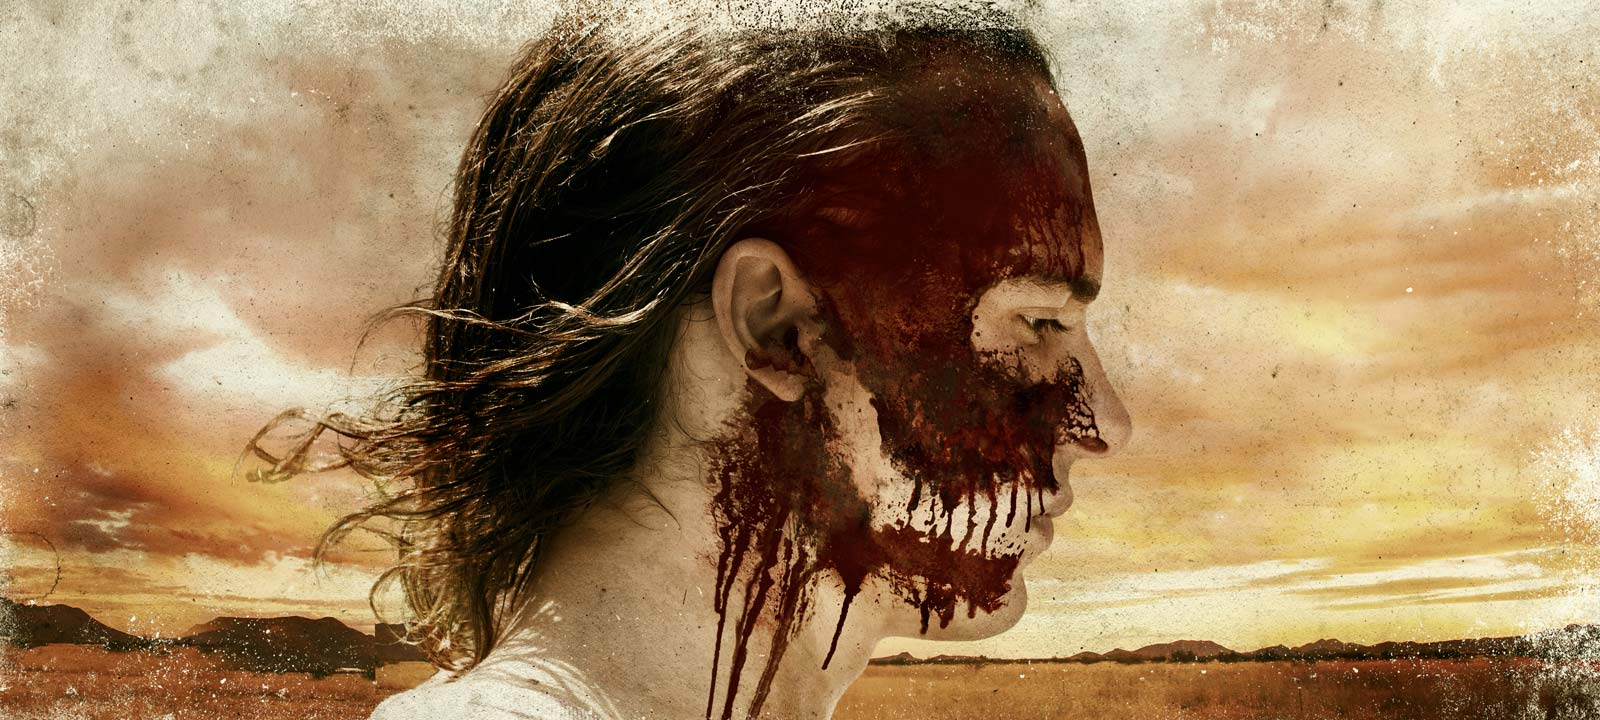 fear-the-walking-dead-season-3-key-art-nick-dillane-800×600-no-logo